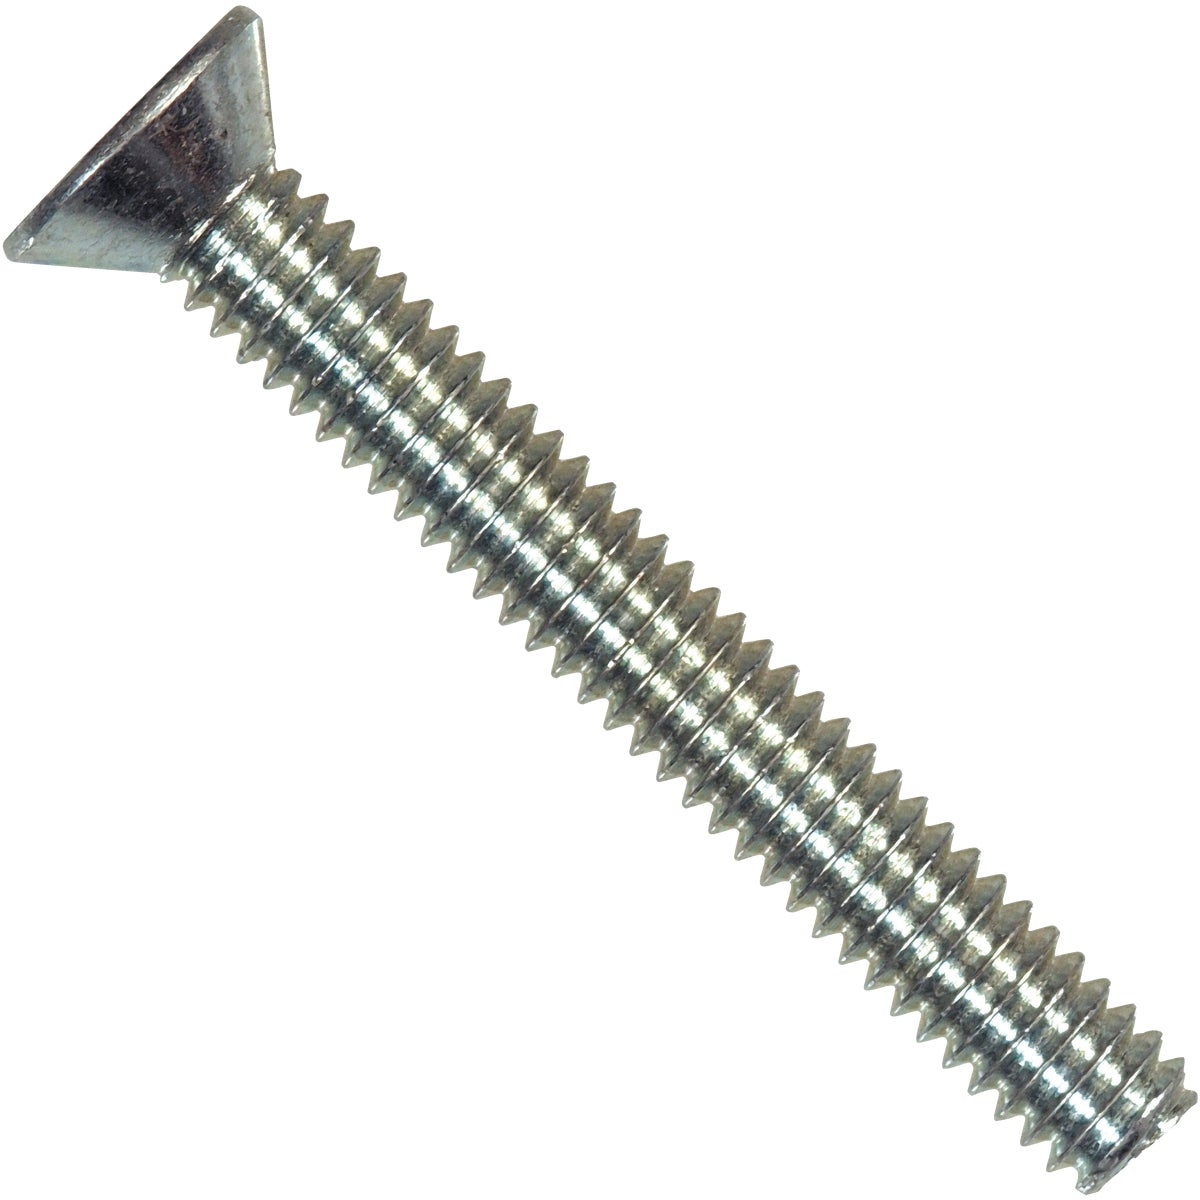 1/4-20X3/4 FH MACH SCREW - 101137 by Hillman Fastener